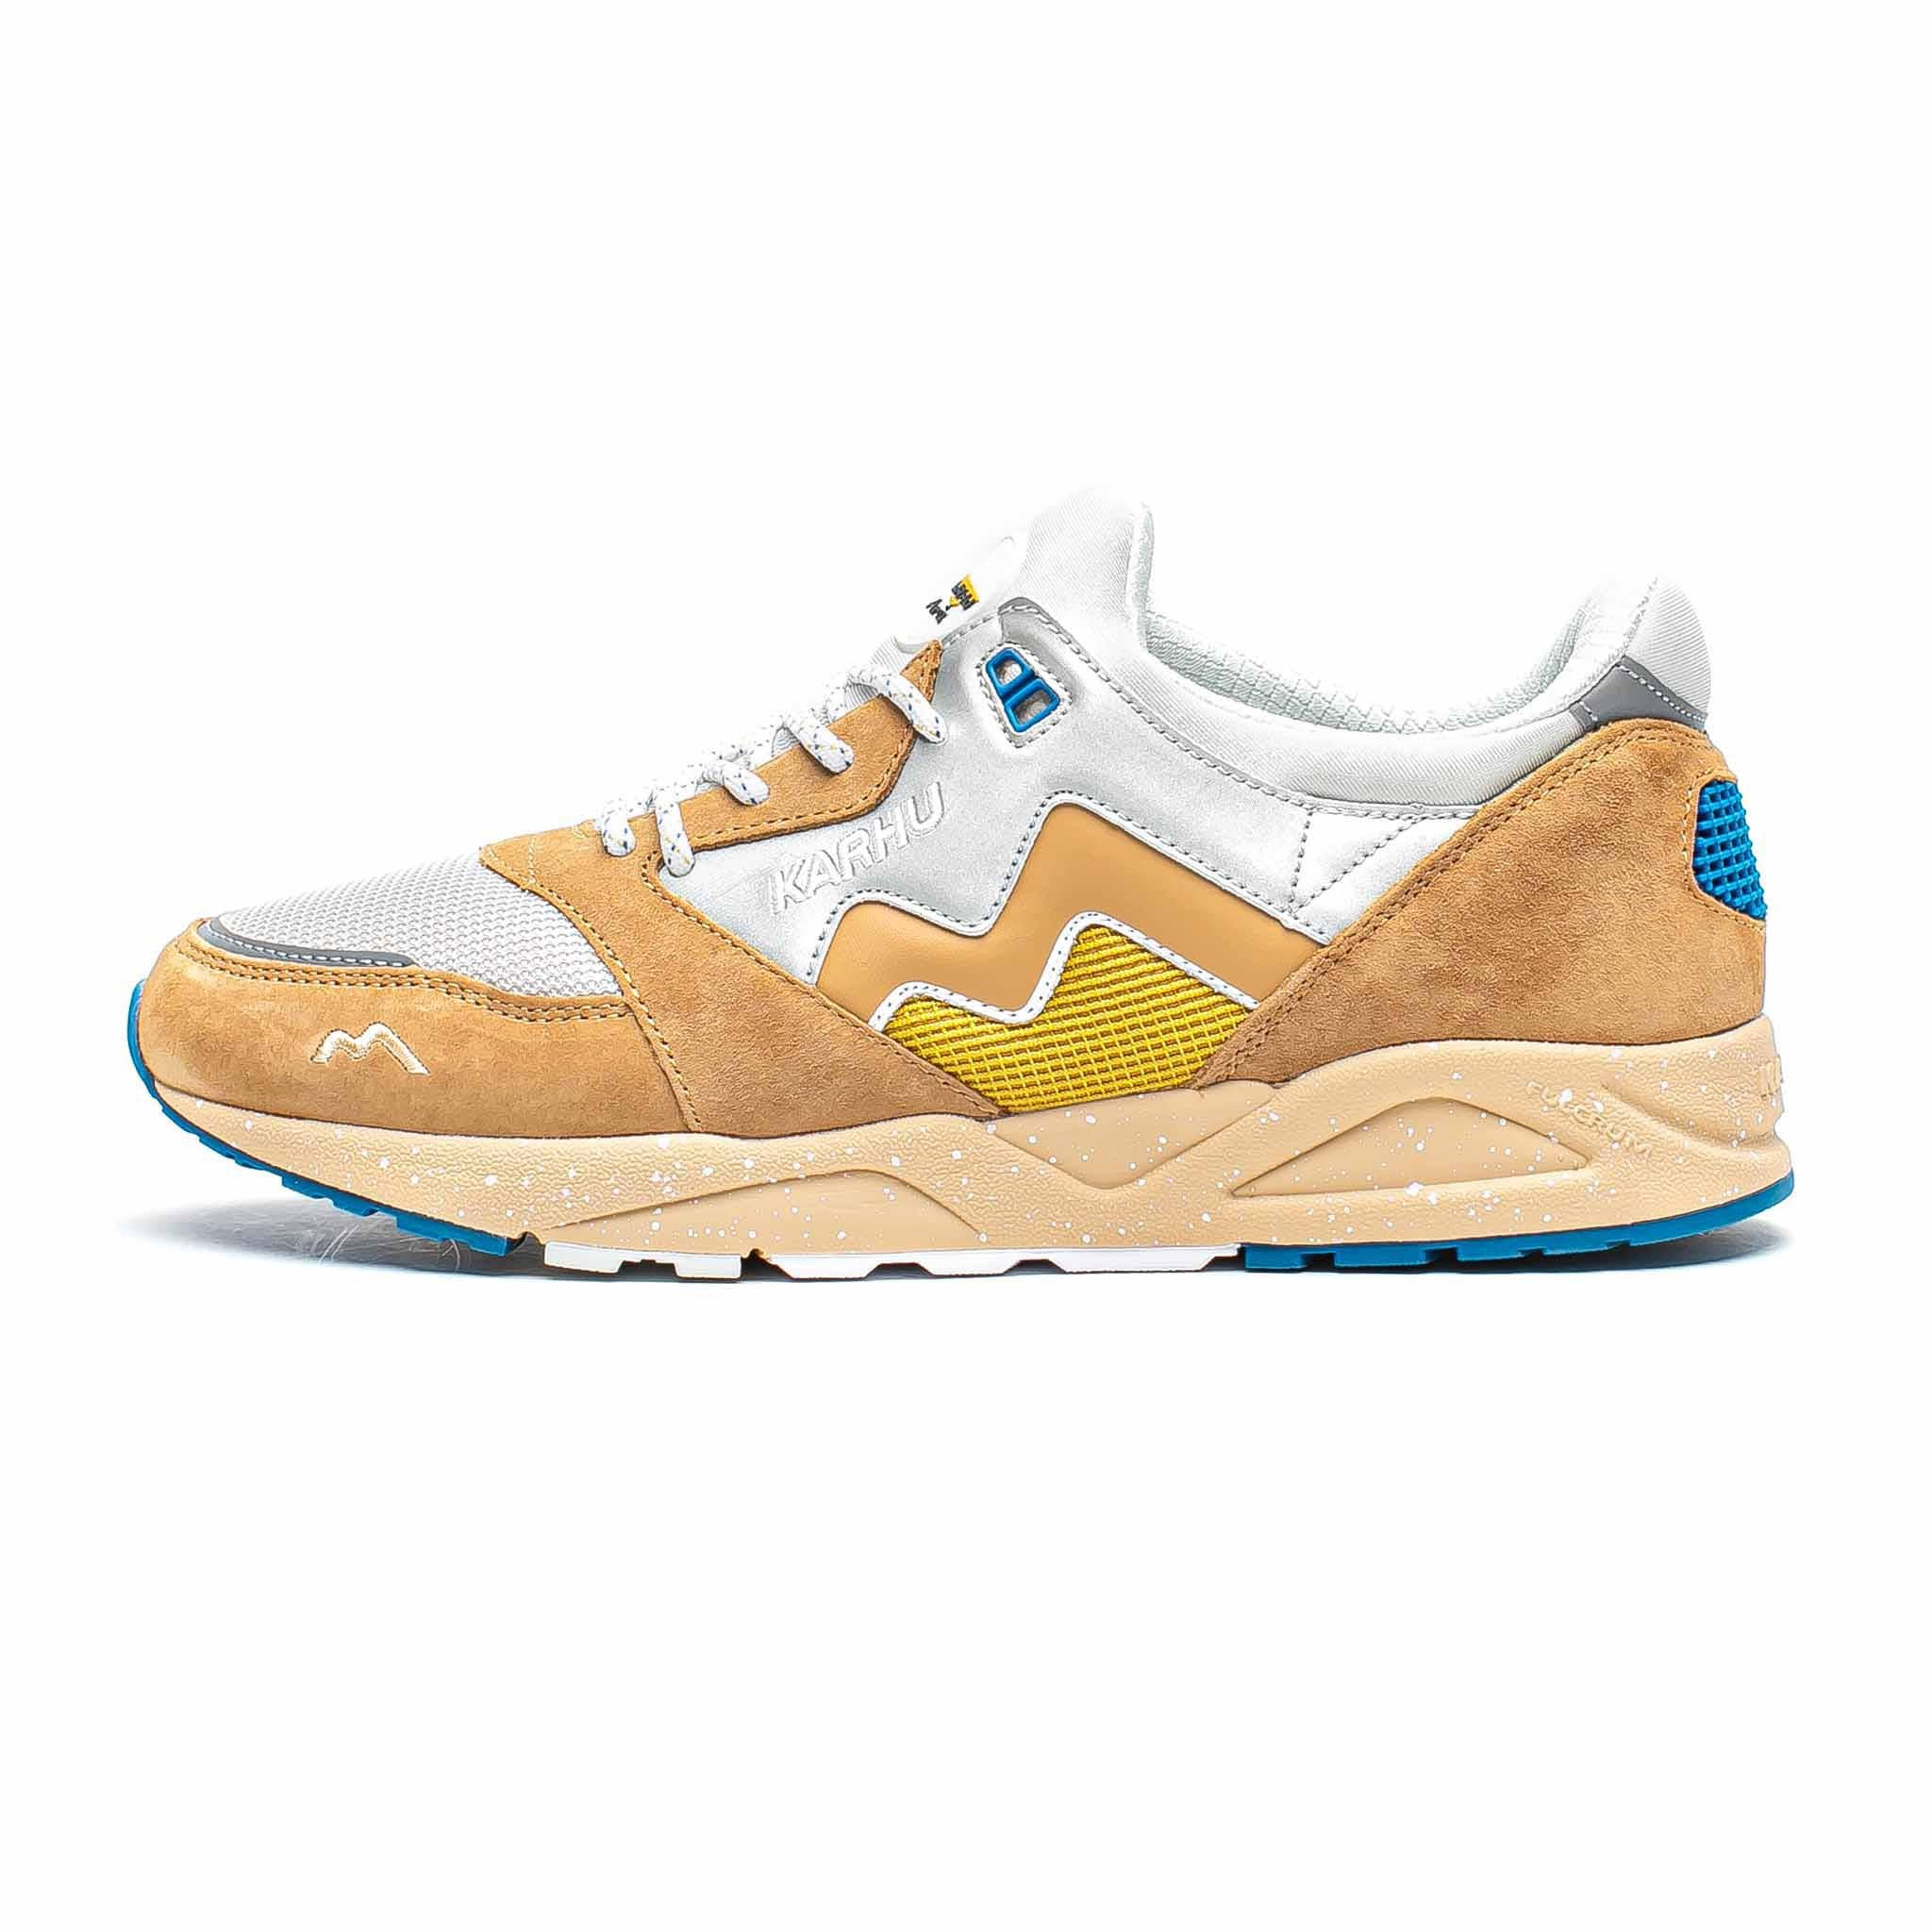 Karhu 'All-Around' Pack Aria 95 Curry/Golden Palm